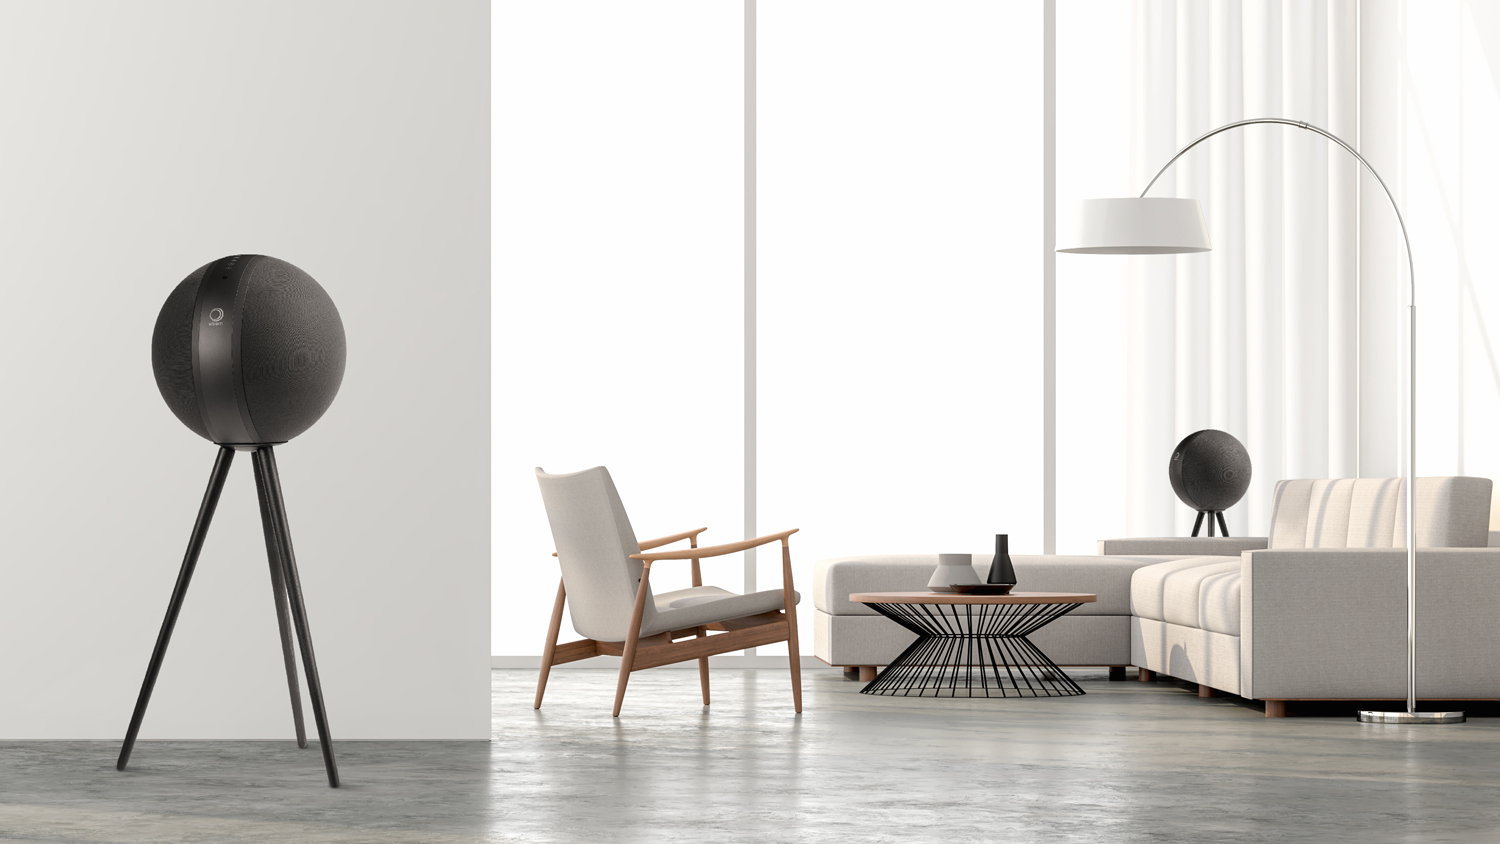 Elipson W35 brings wireless audio to Planet-shaped speakers